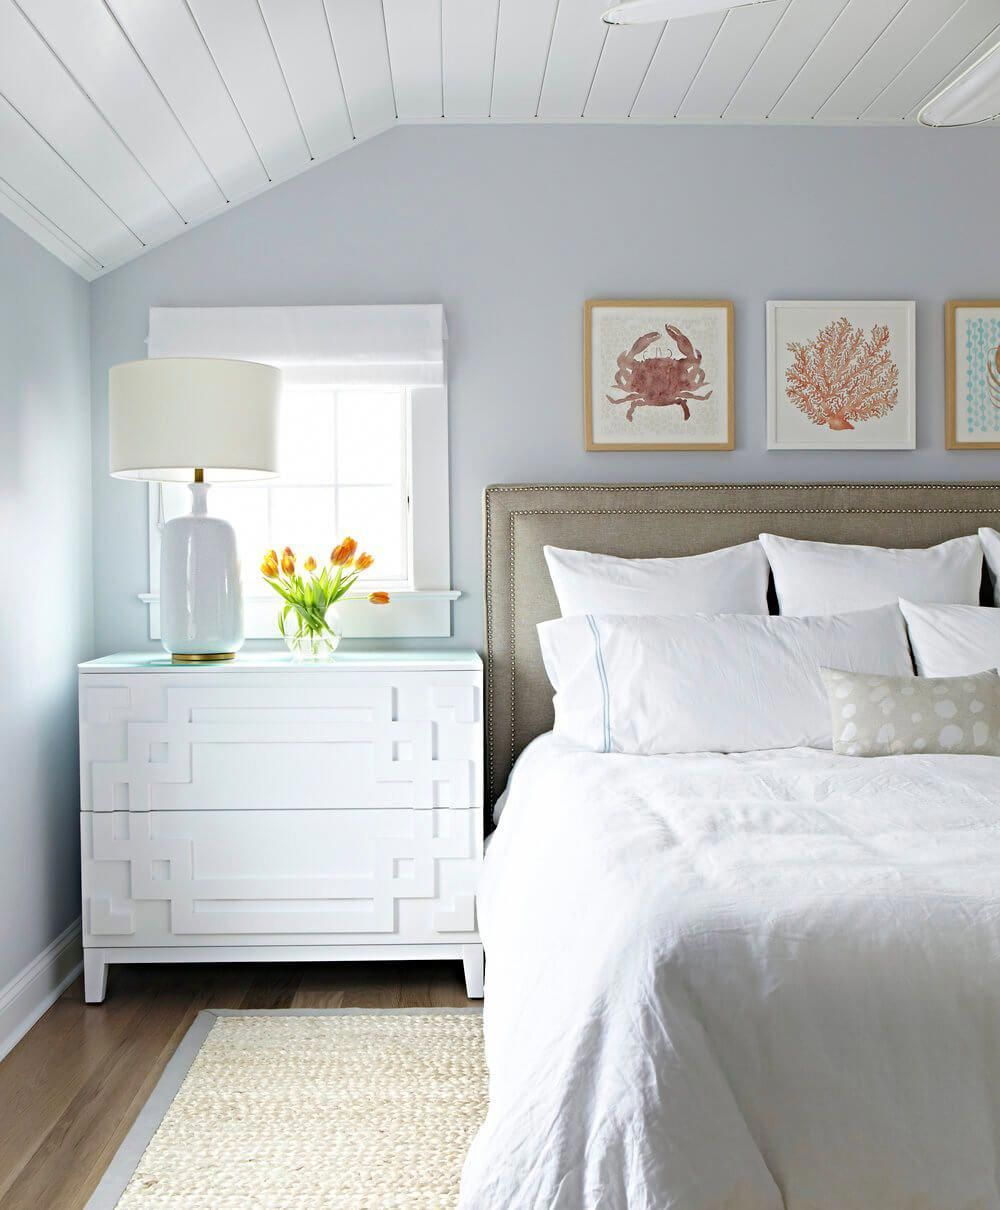 Beach House Master Bedroom Sugarsbeach Awesome Beach Bedroom Decor Inspiration At Sugarsbe Bedroom Decor Inspiration Coastal Style Bedroom Beach Bedroom Decor